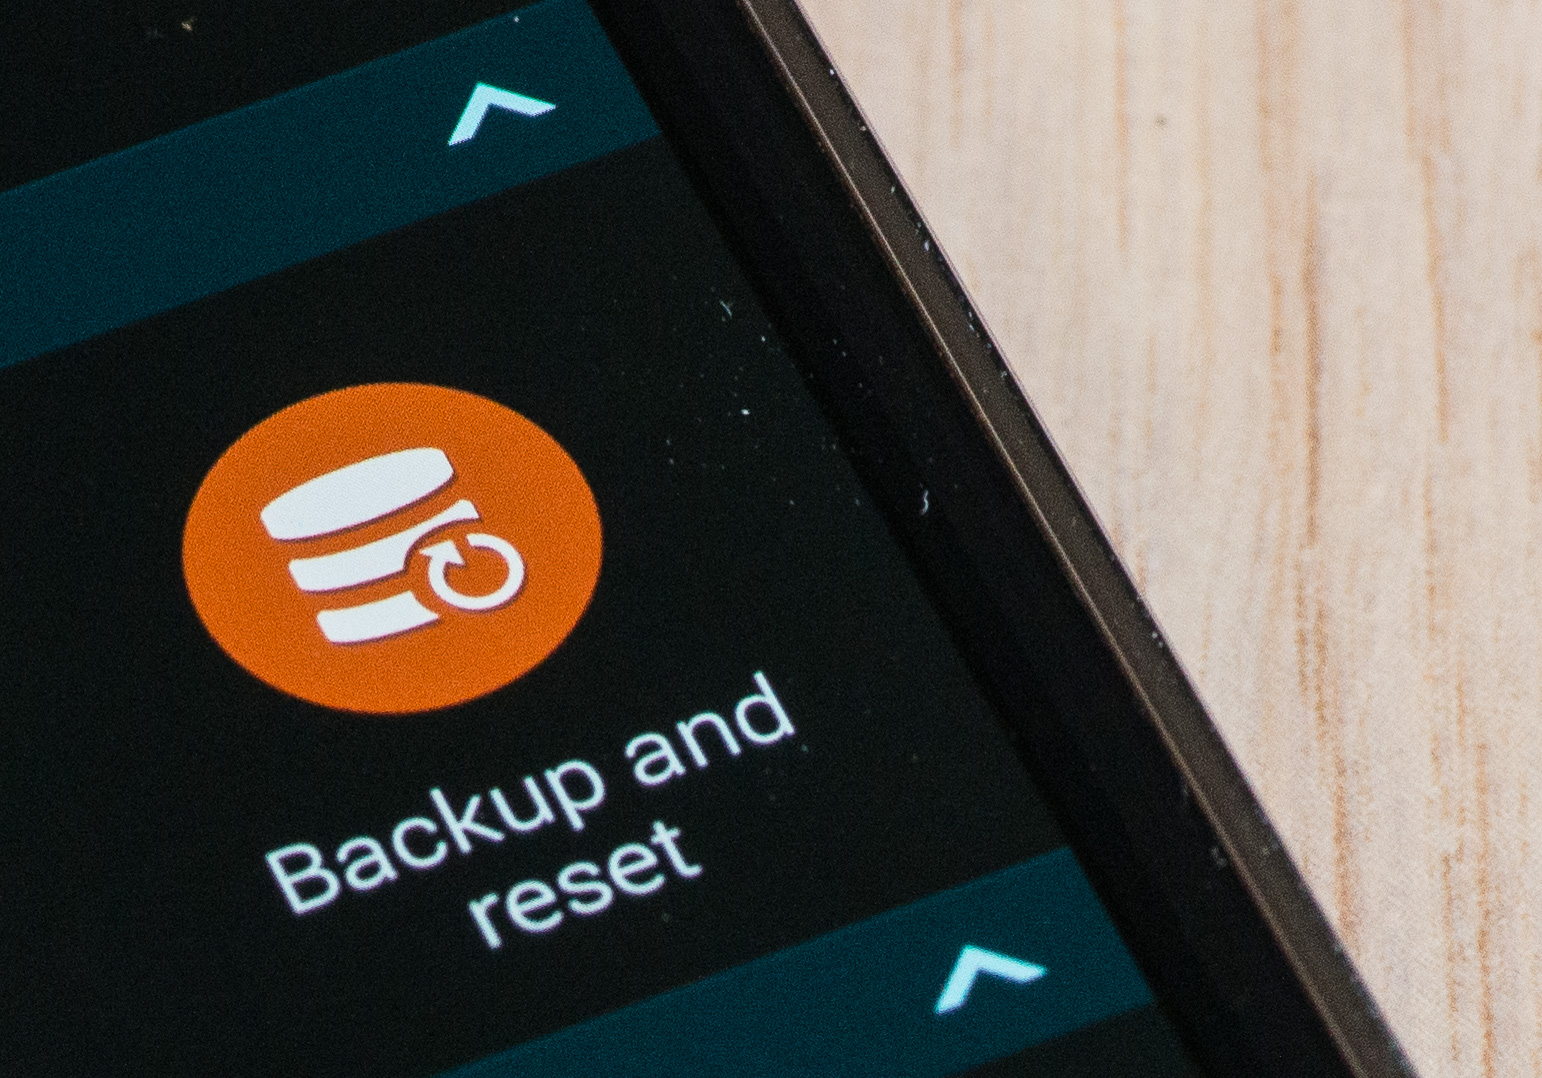 android-backup-reset.jpg